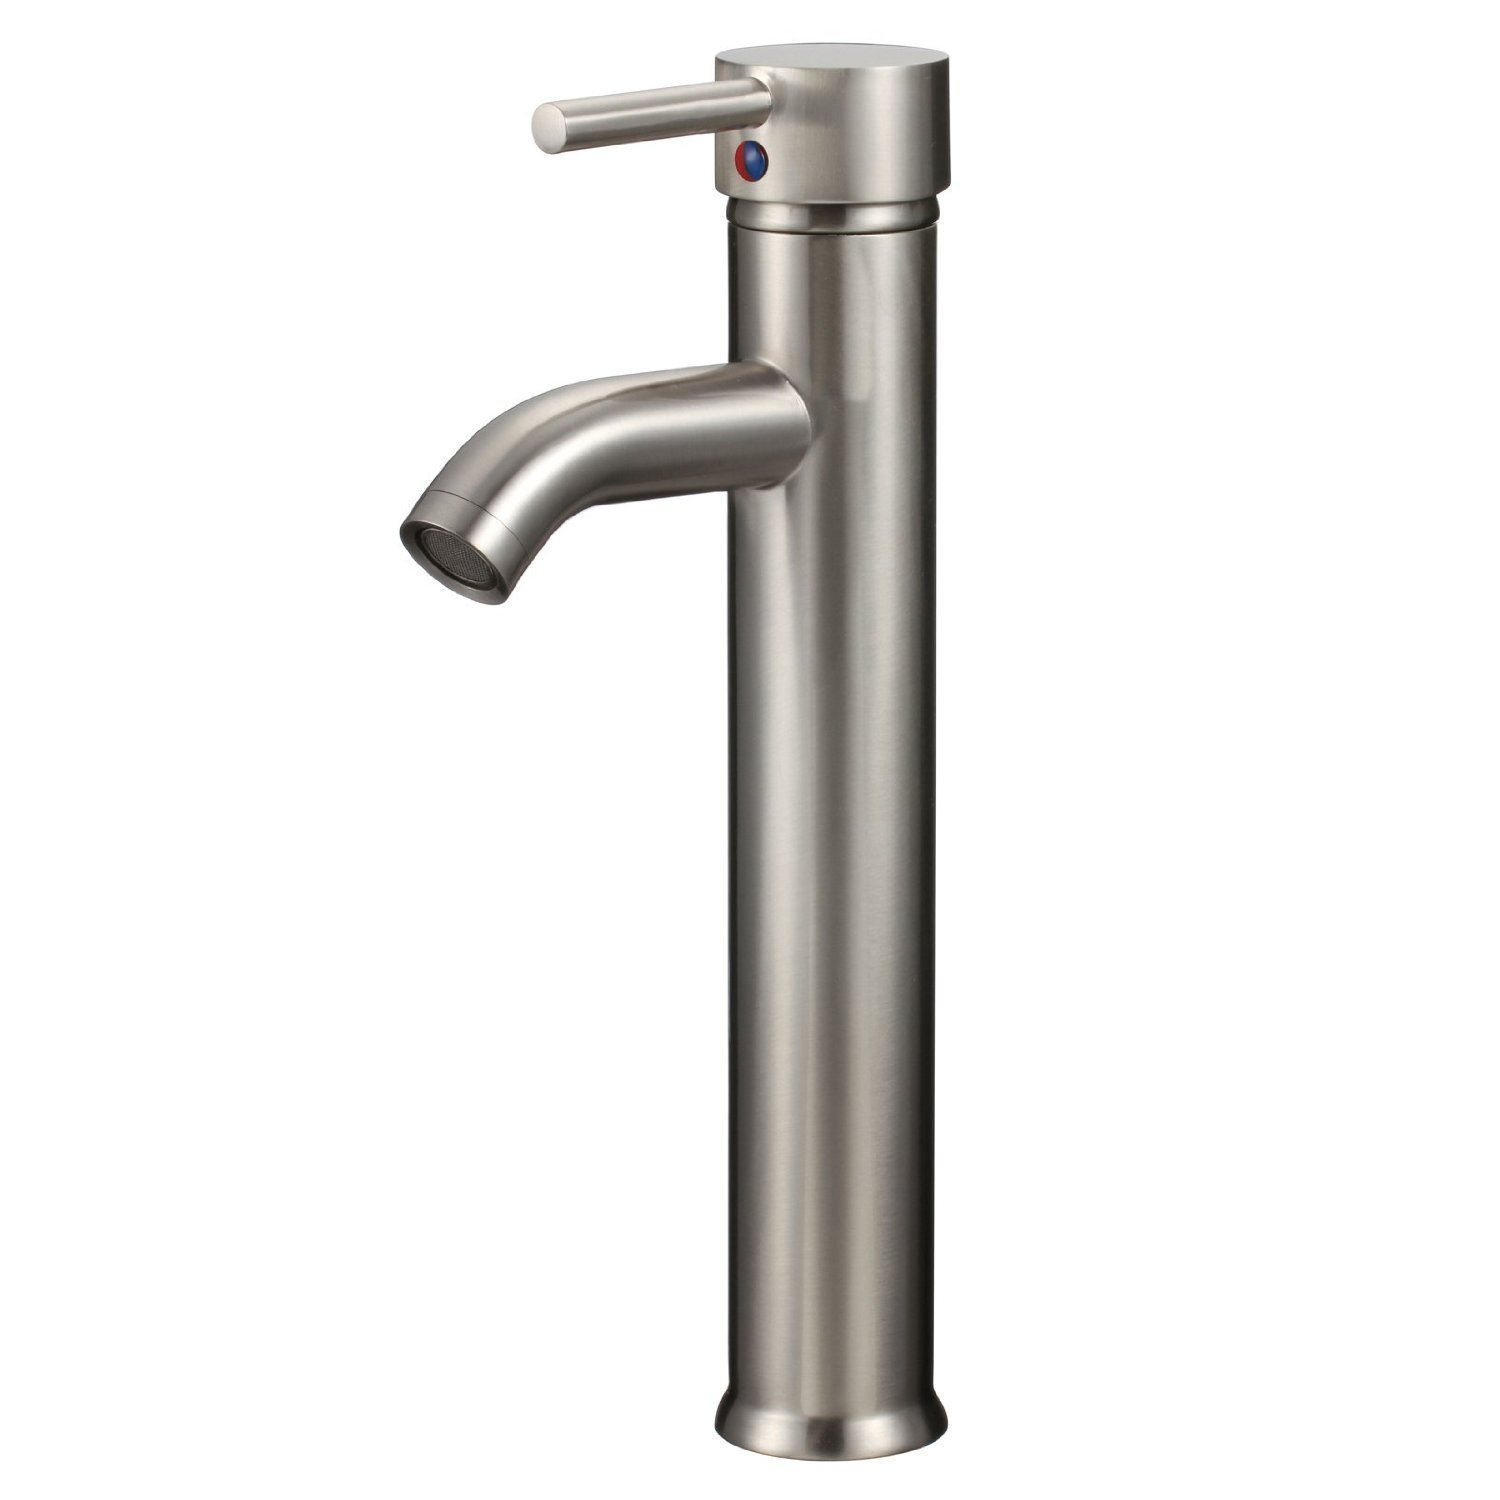 Yodel Vessel Bathroom Sink Faucet, Brushed Nickel - - Amazon.com